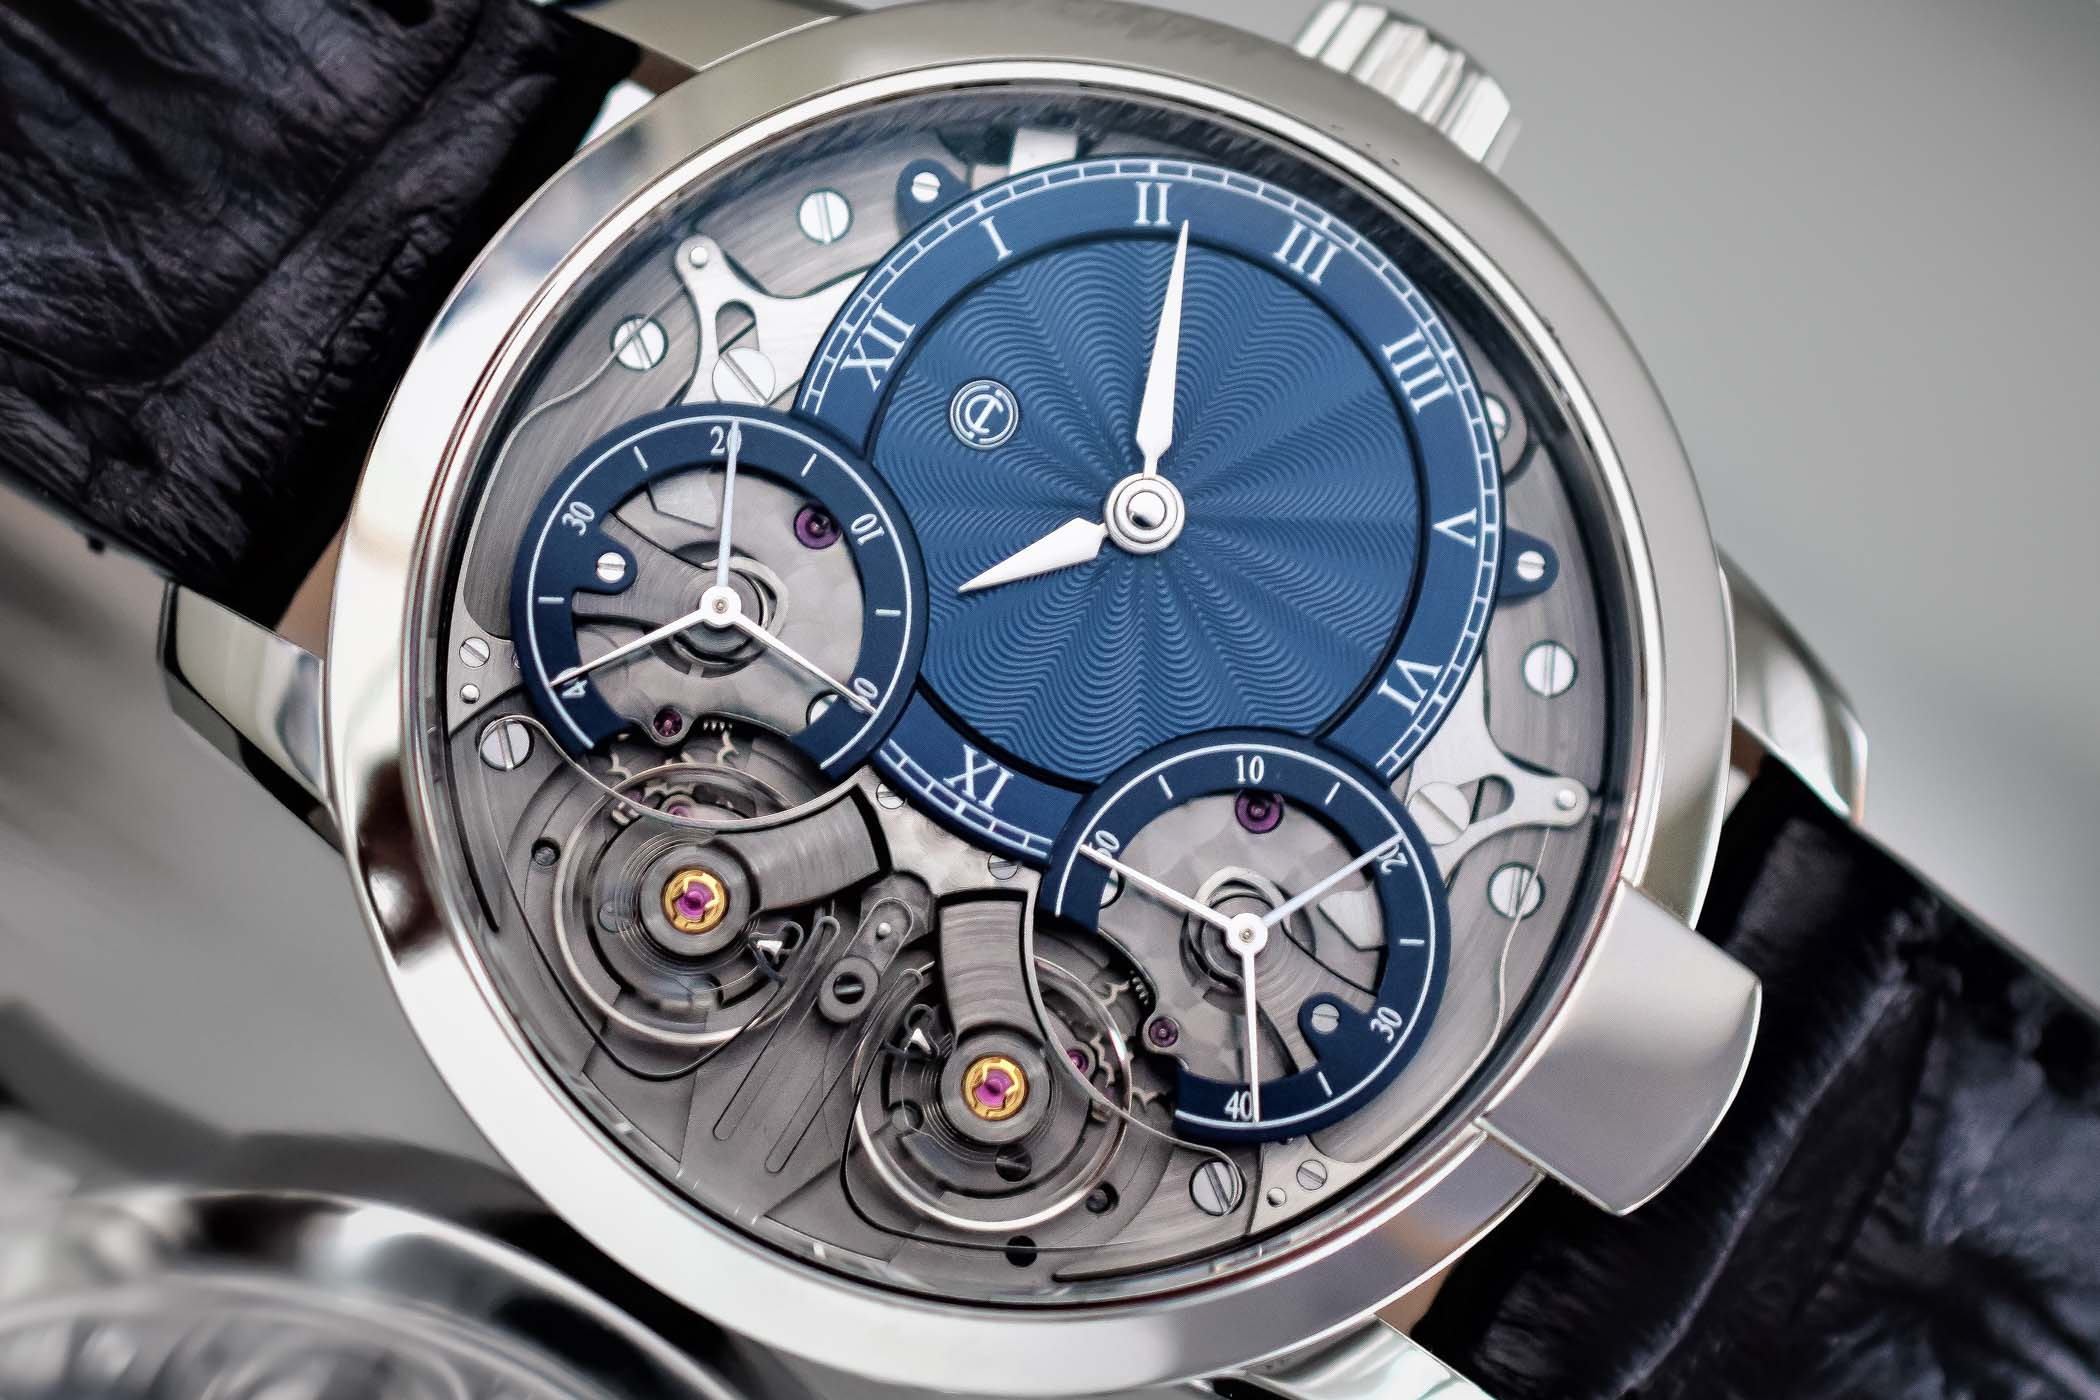 Armin Strom Mirrored Force Resonance Guilloche Dials by Voutilainen